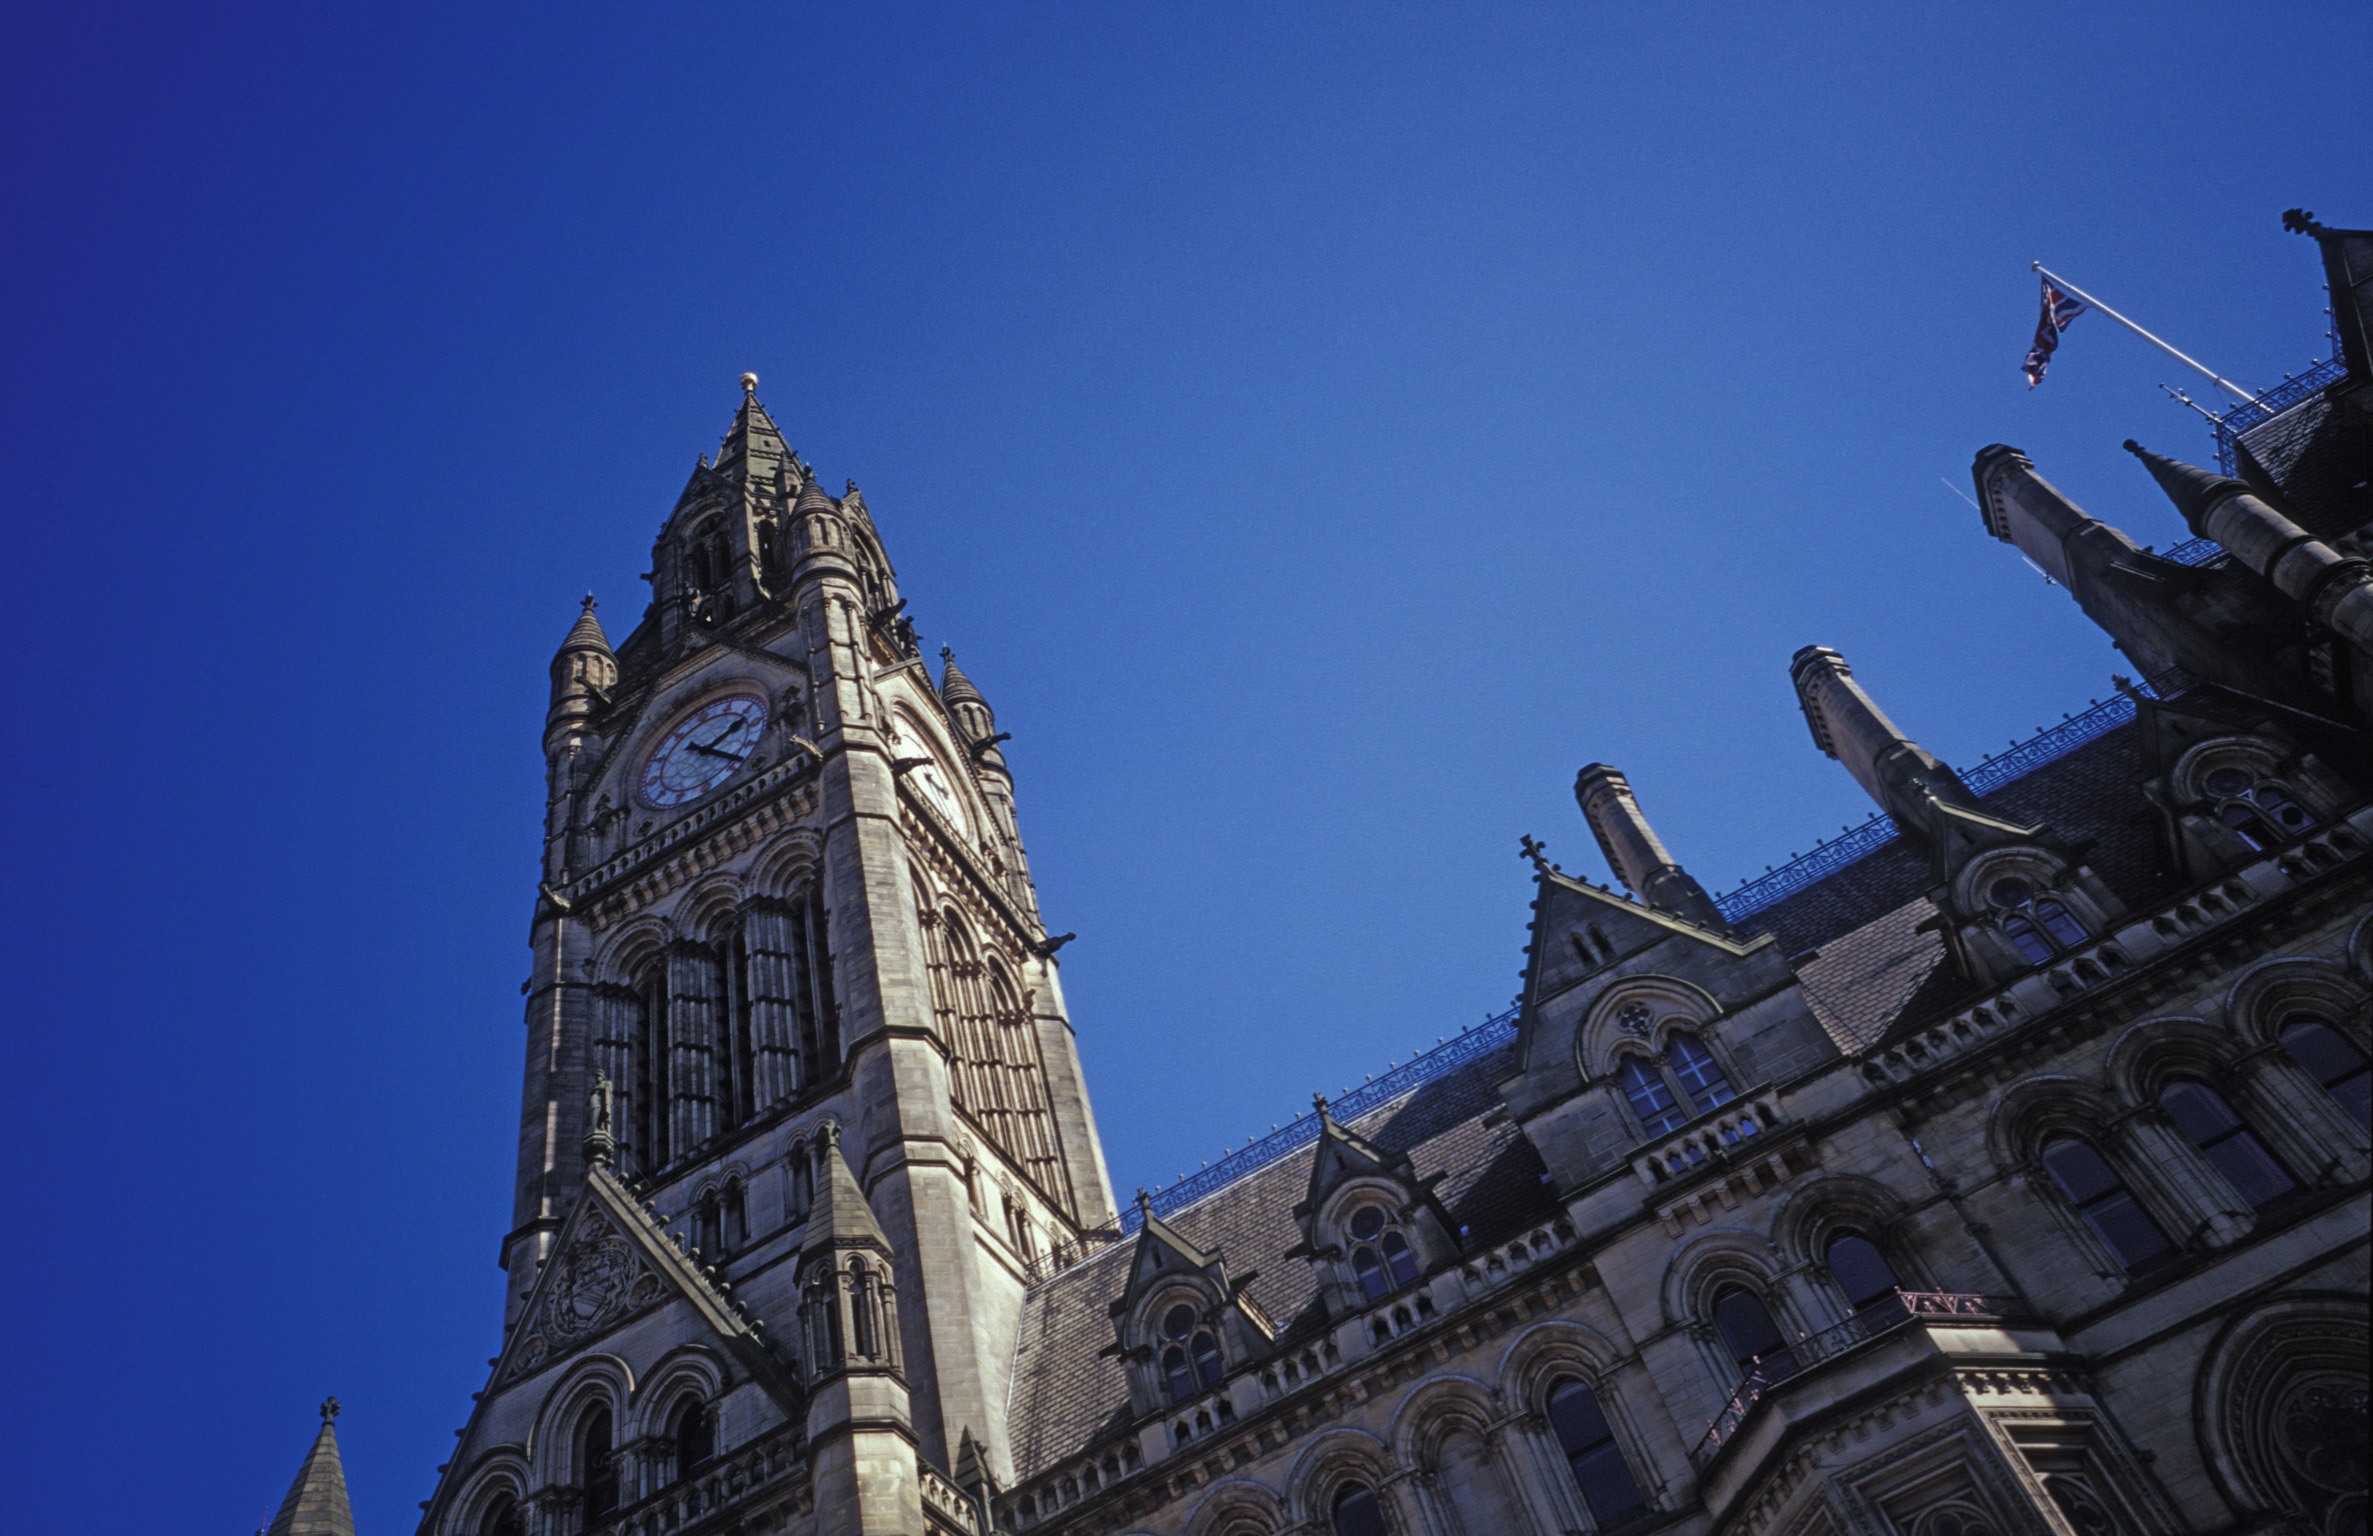 low angle view looking up at the clock tower of manchester town hall